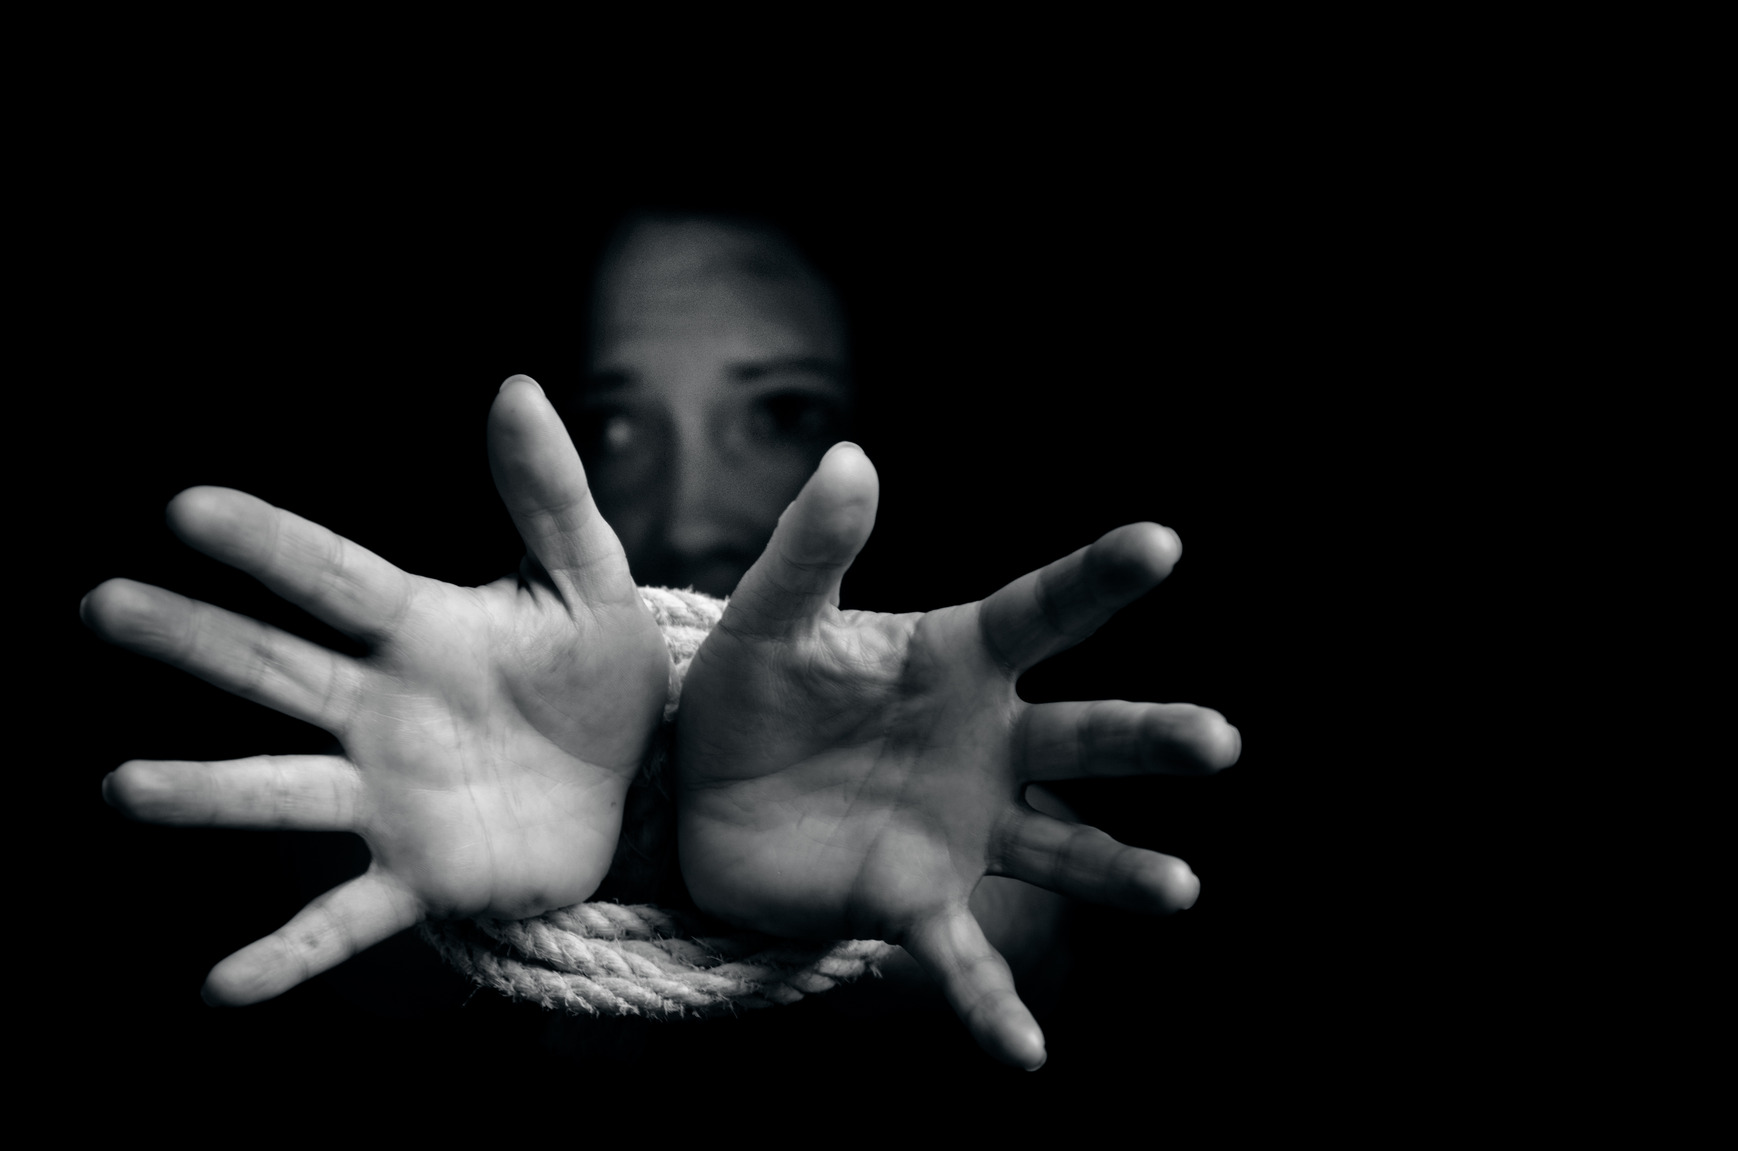 Woman with hands tied up with rope in emotional stress and pain